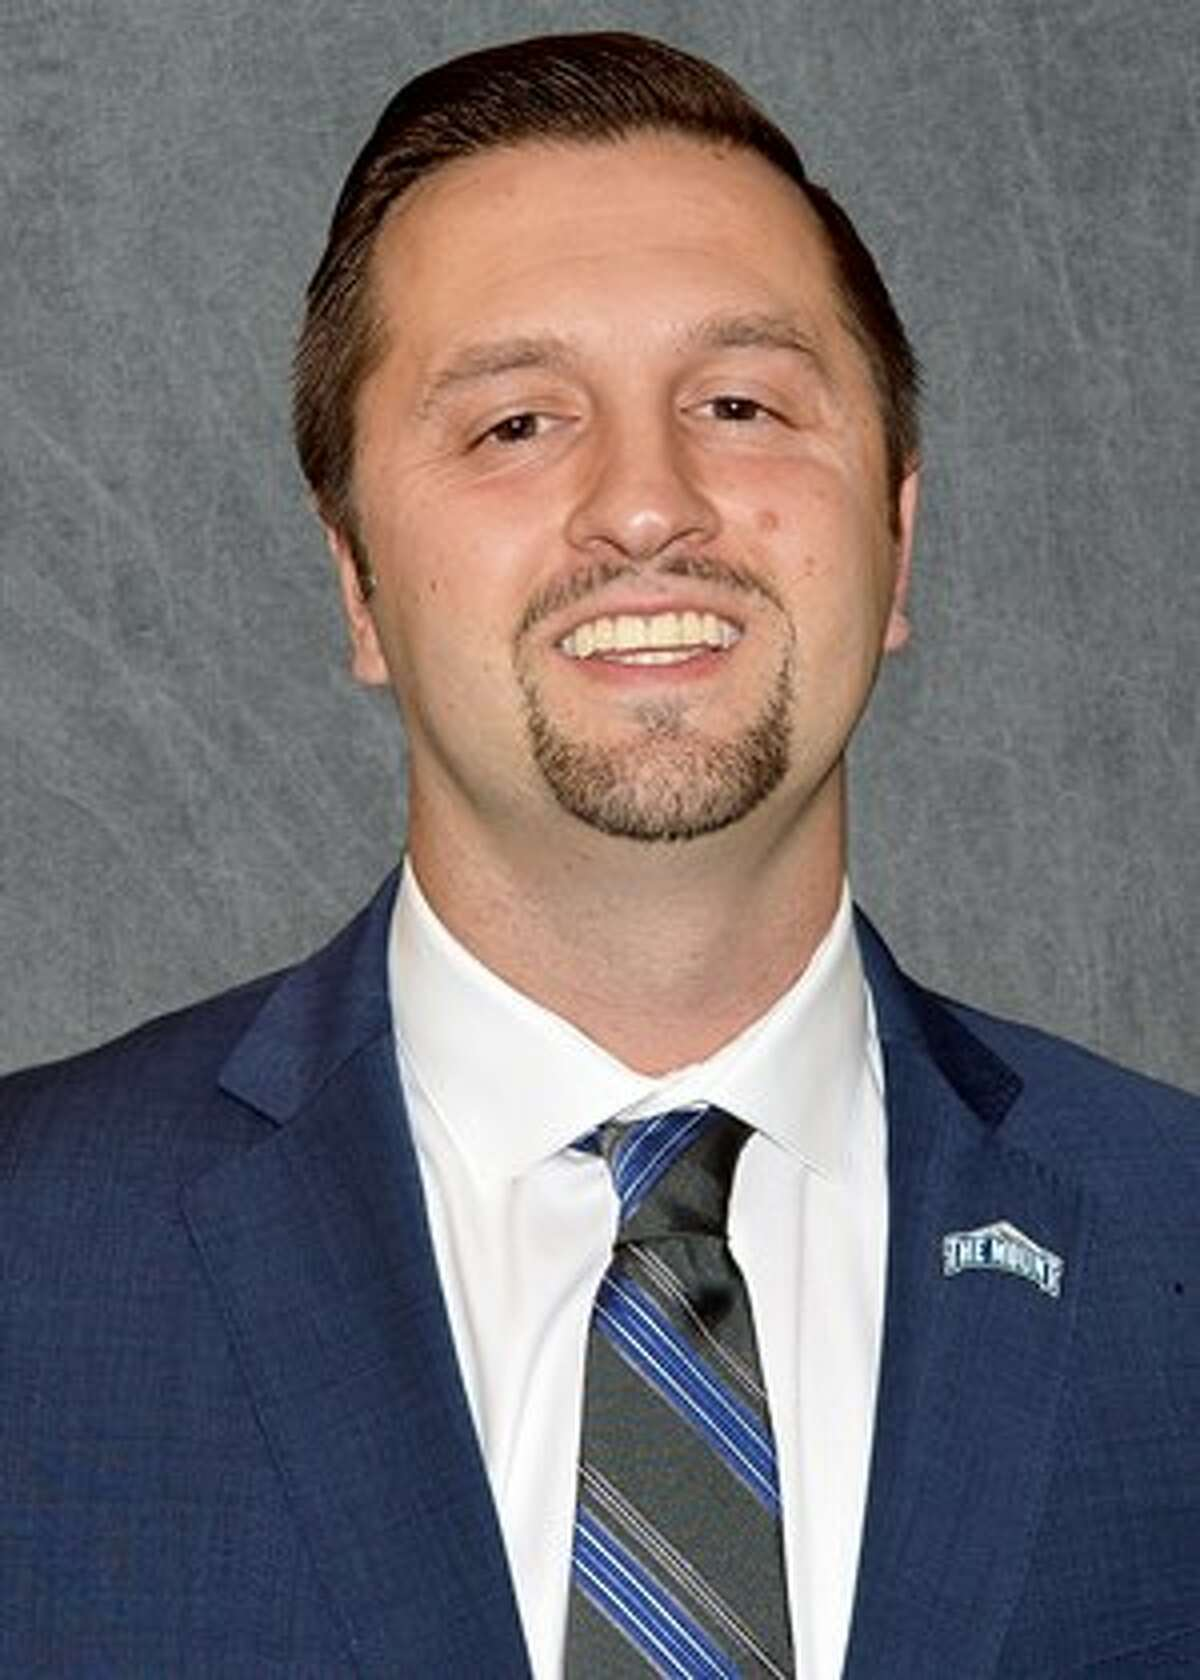 He is in his third season as coach at Mount St. Mary's, where he replaced former Siena coach Jamion Christian. He had five highly successful seasons as coach at Southern Vermont in Bennington.